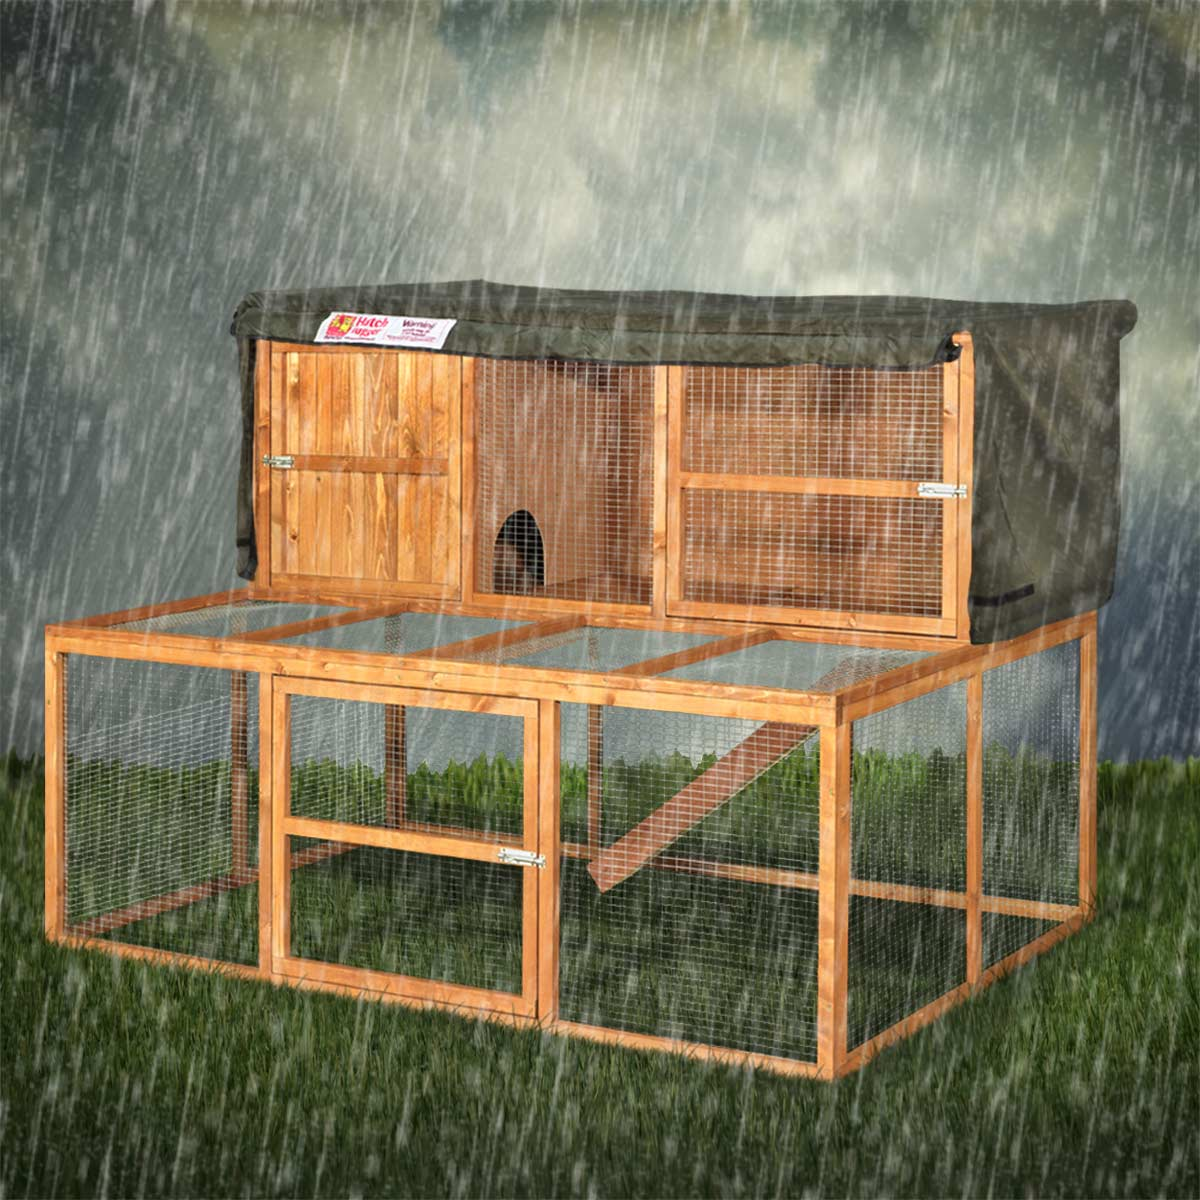 Home roost 5ft kendal rabbit hutch hugger for How to make a rabbit hutch from scratch